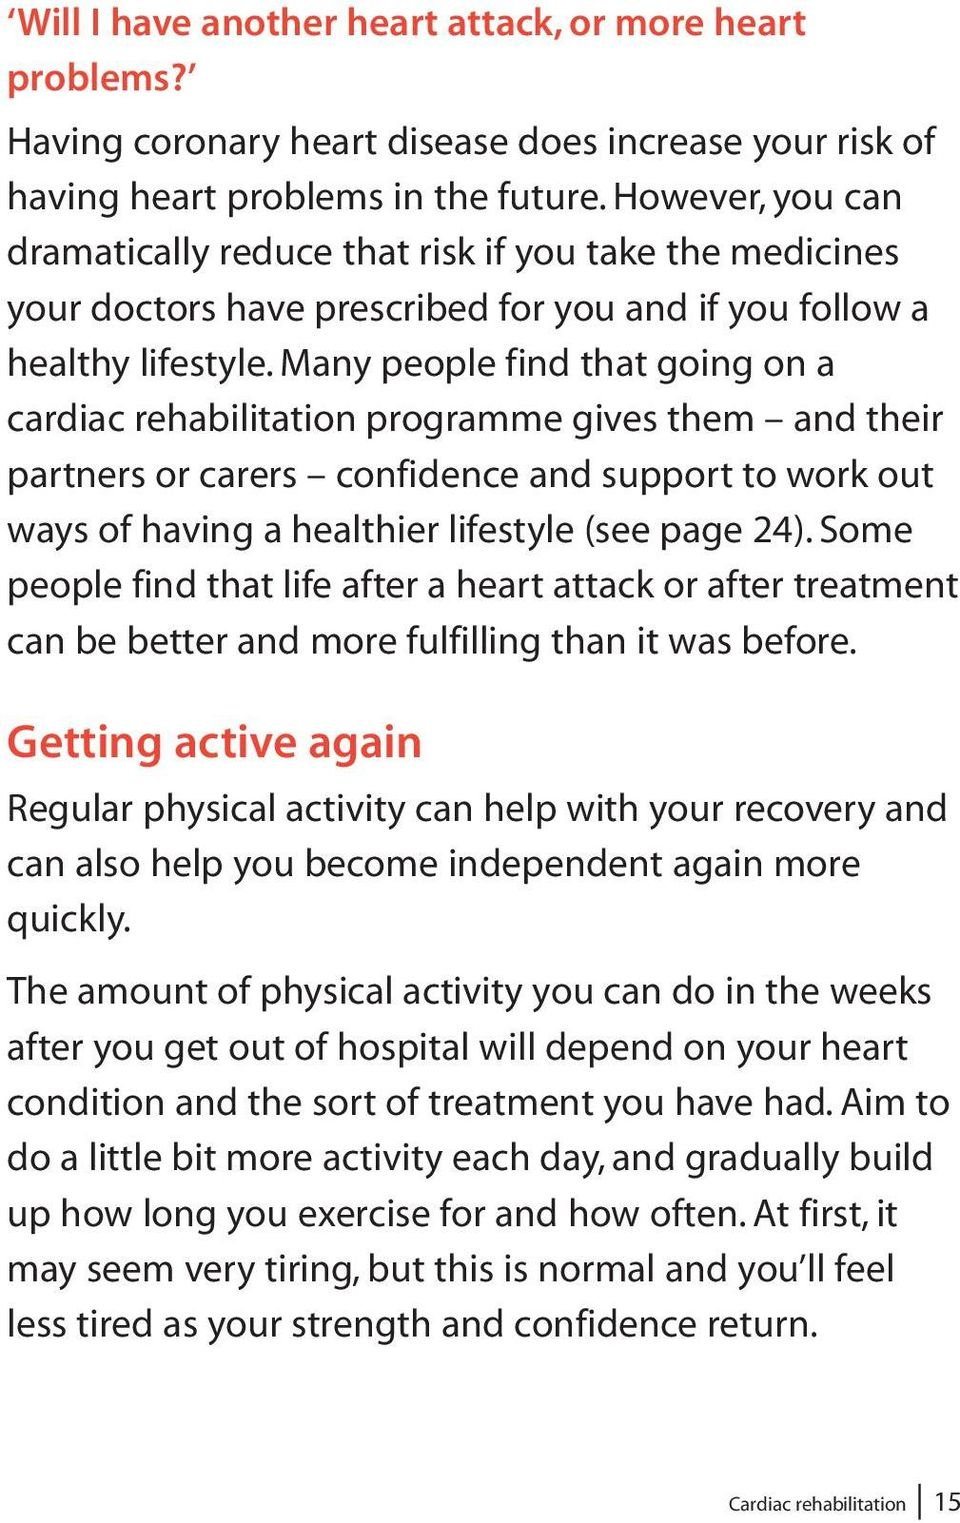 Many people find that going on a cardiac rehabilitation programme gives them and their partners or carers confidence and support to work out ways of having a healthier lifestyle (see page 24).